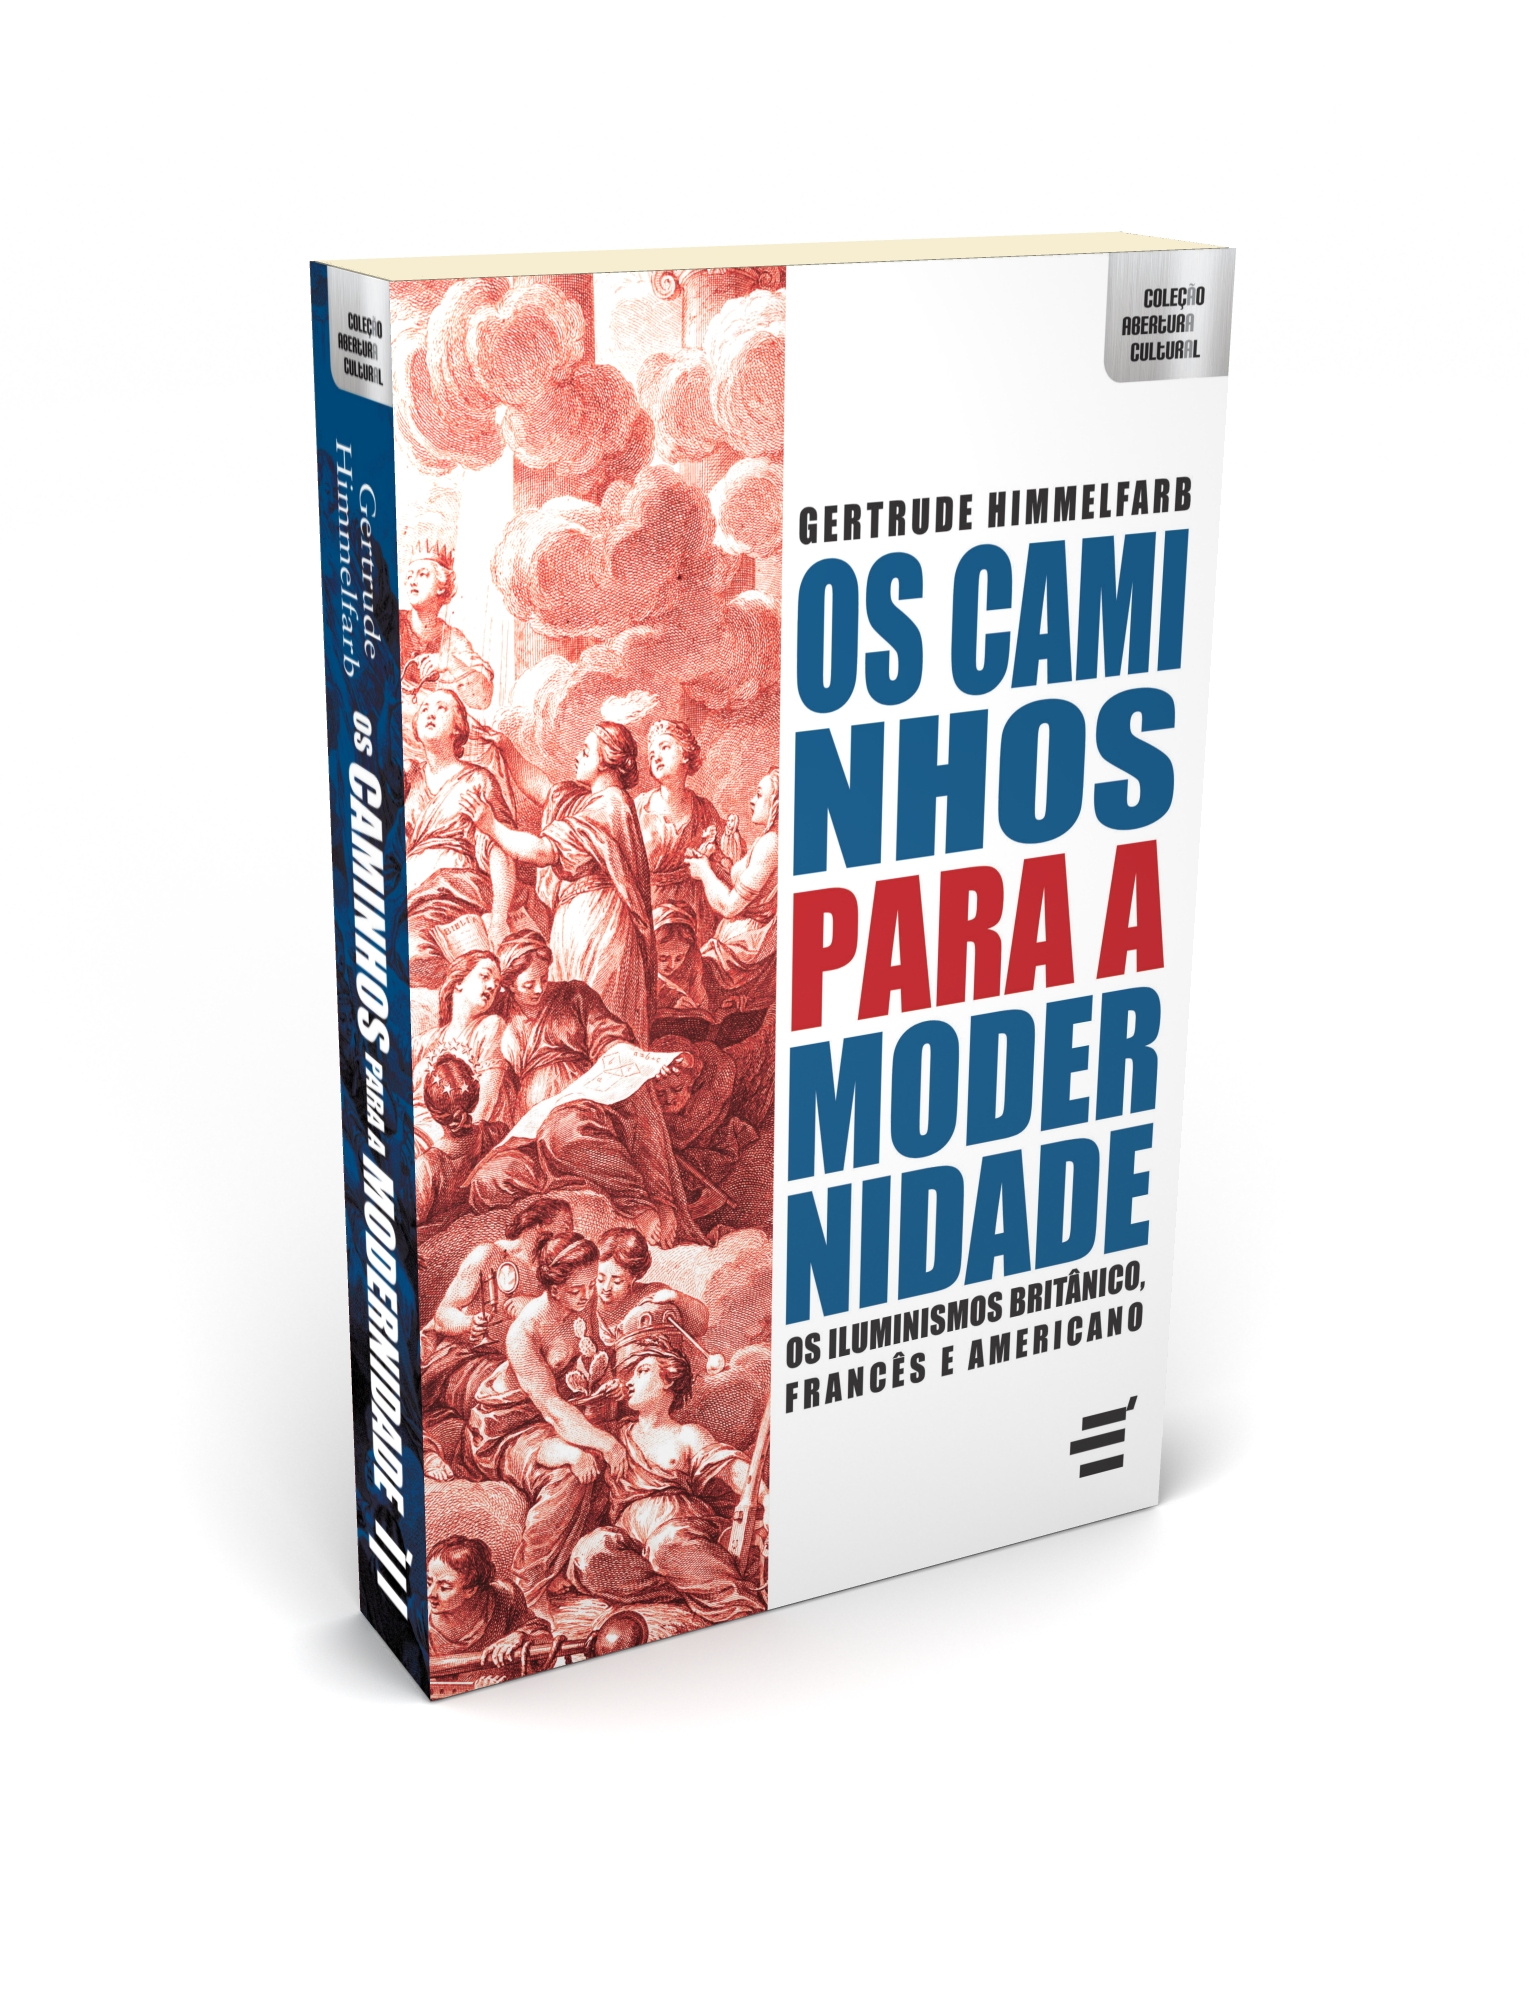 Festa do Livro da USP Himmelfarb